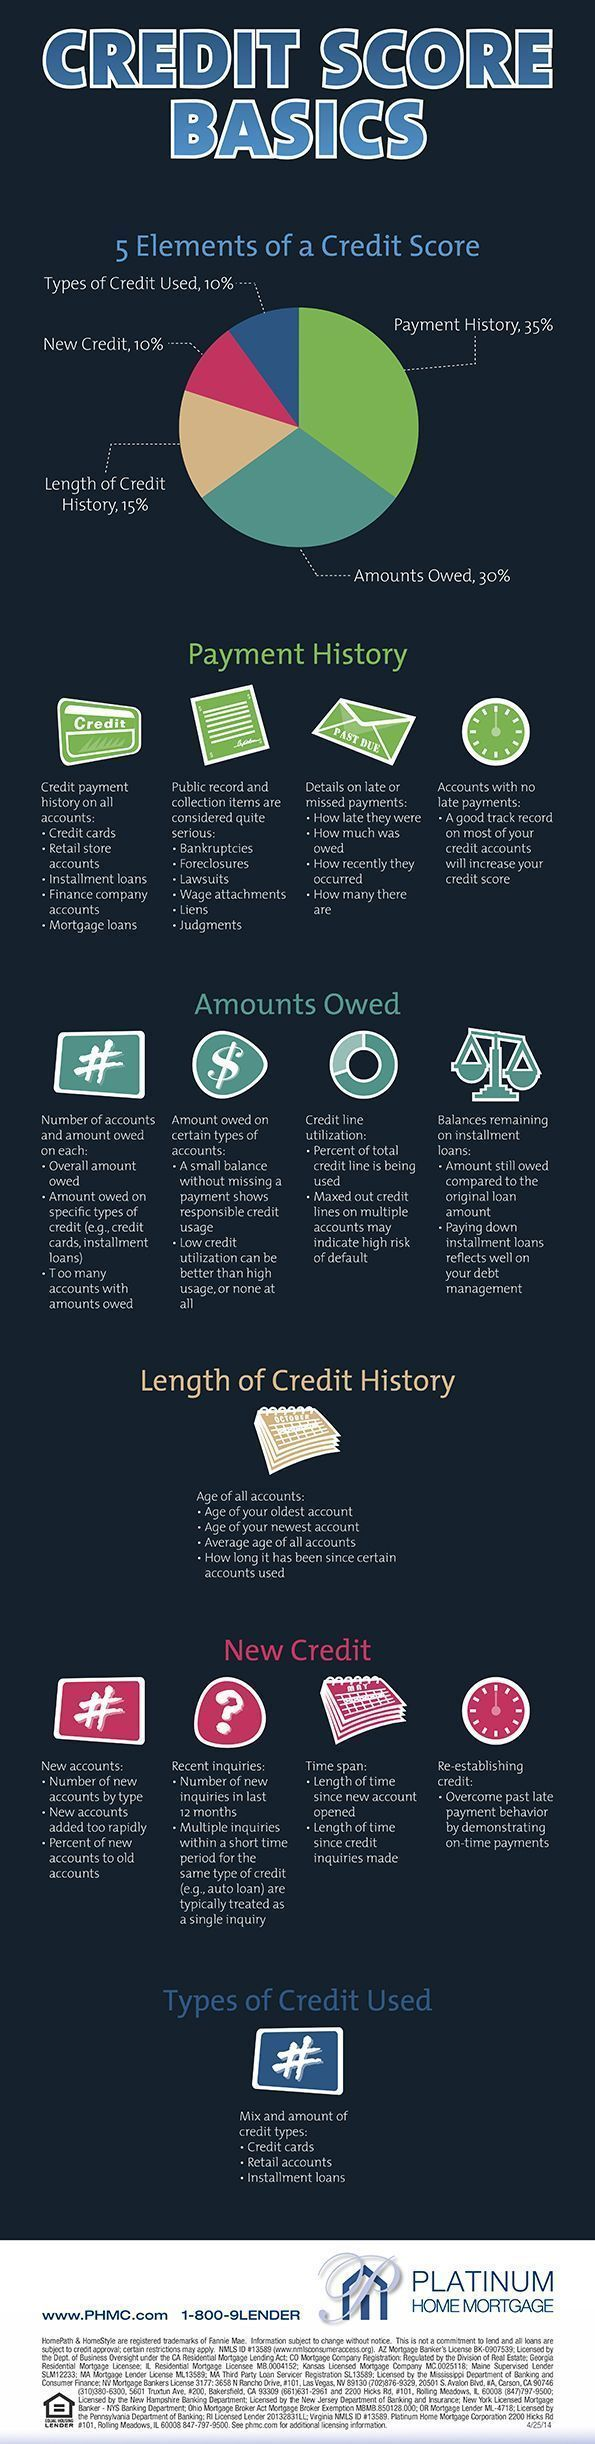 Credit Card Cost Calculator Credit Advice Ideas Of Credit Advice Creditadvice Advice What Credi Mortgage Loans Pay Off Mortgage Early Mortgage Payoff